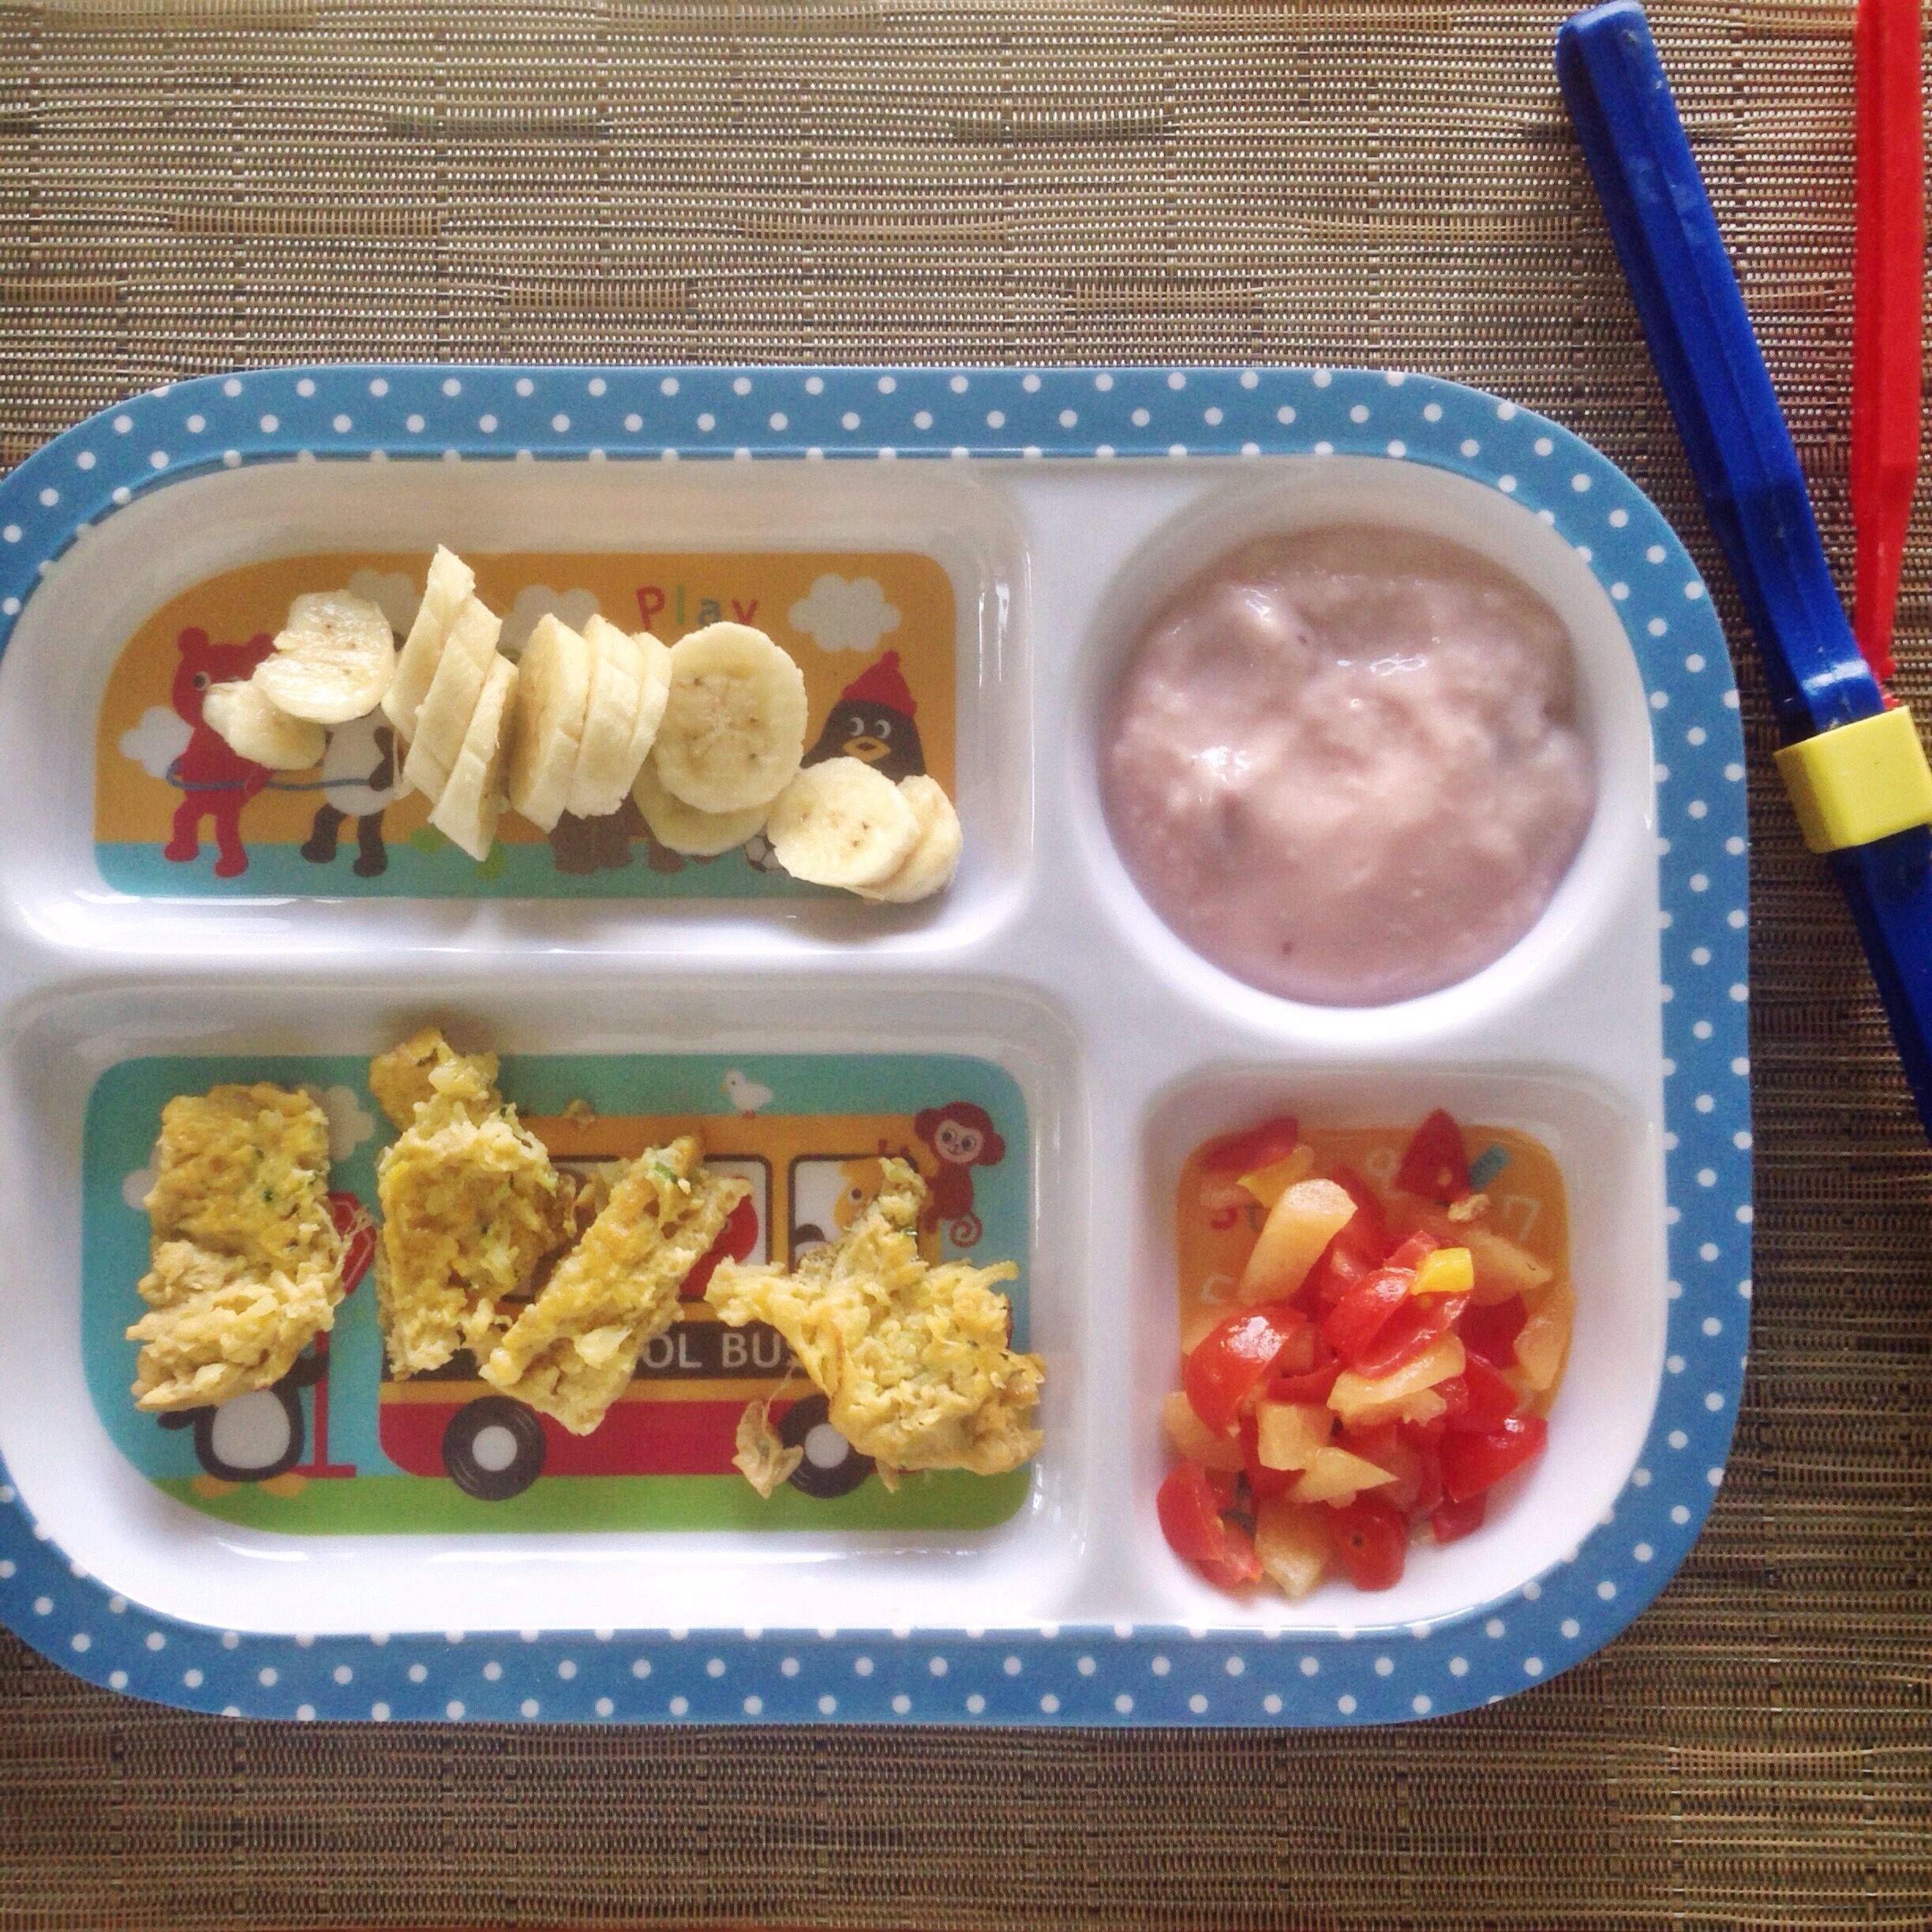 I'm not that active here. For simple baby/toddler meals ...